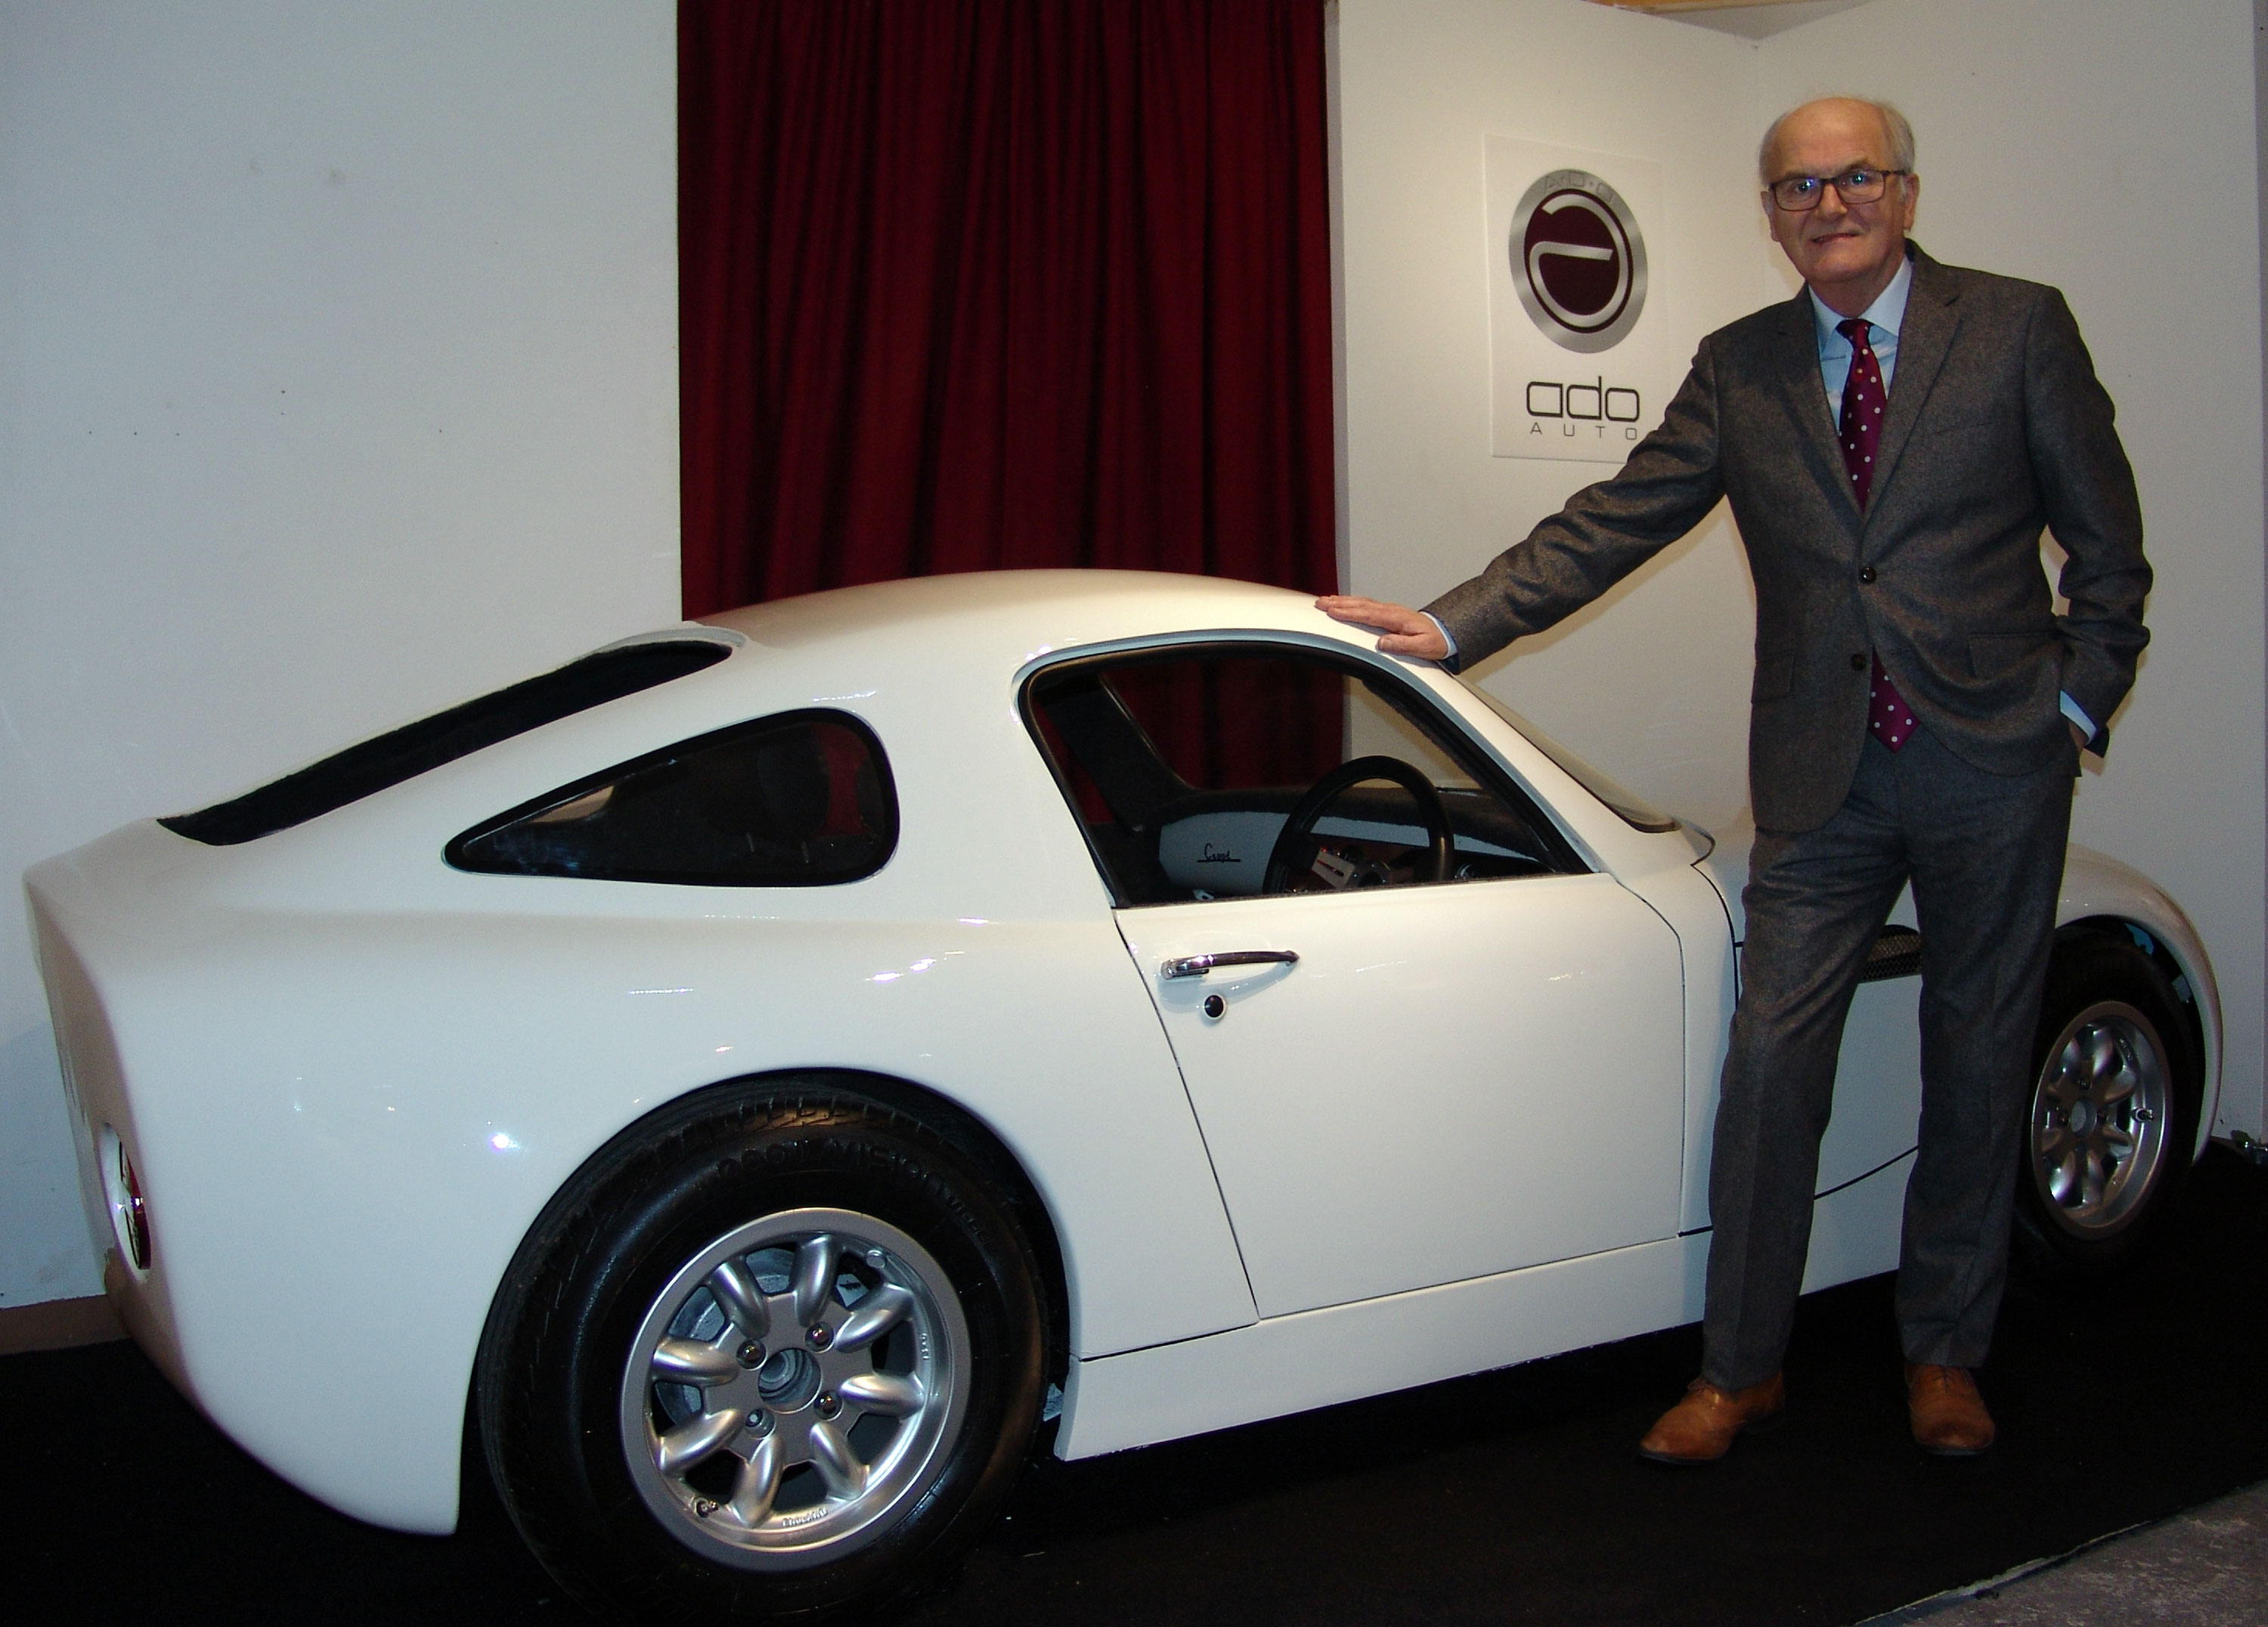 Event director Douglas Anderson at the recent launch of his ADO Coupe, the first new car made in Scotland for nearly 40 years.